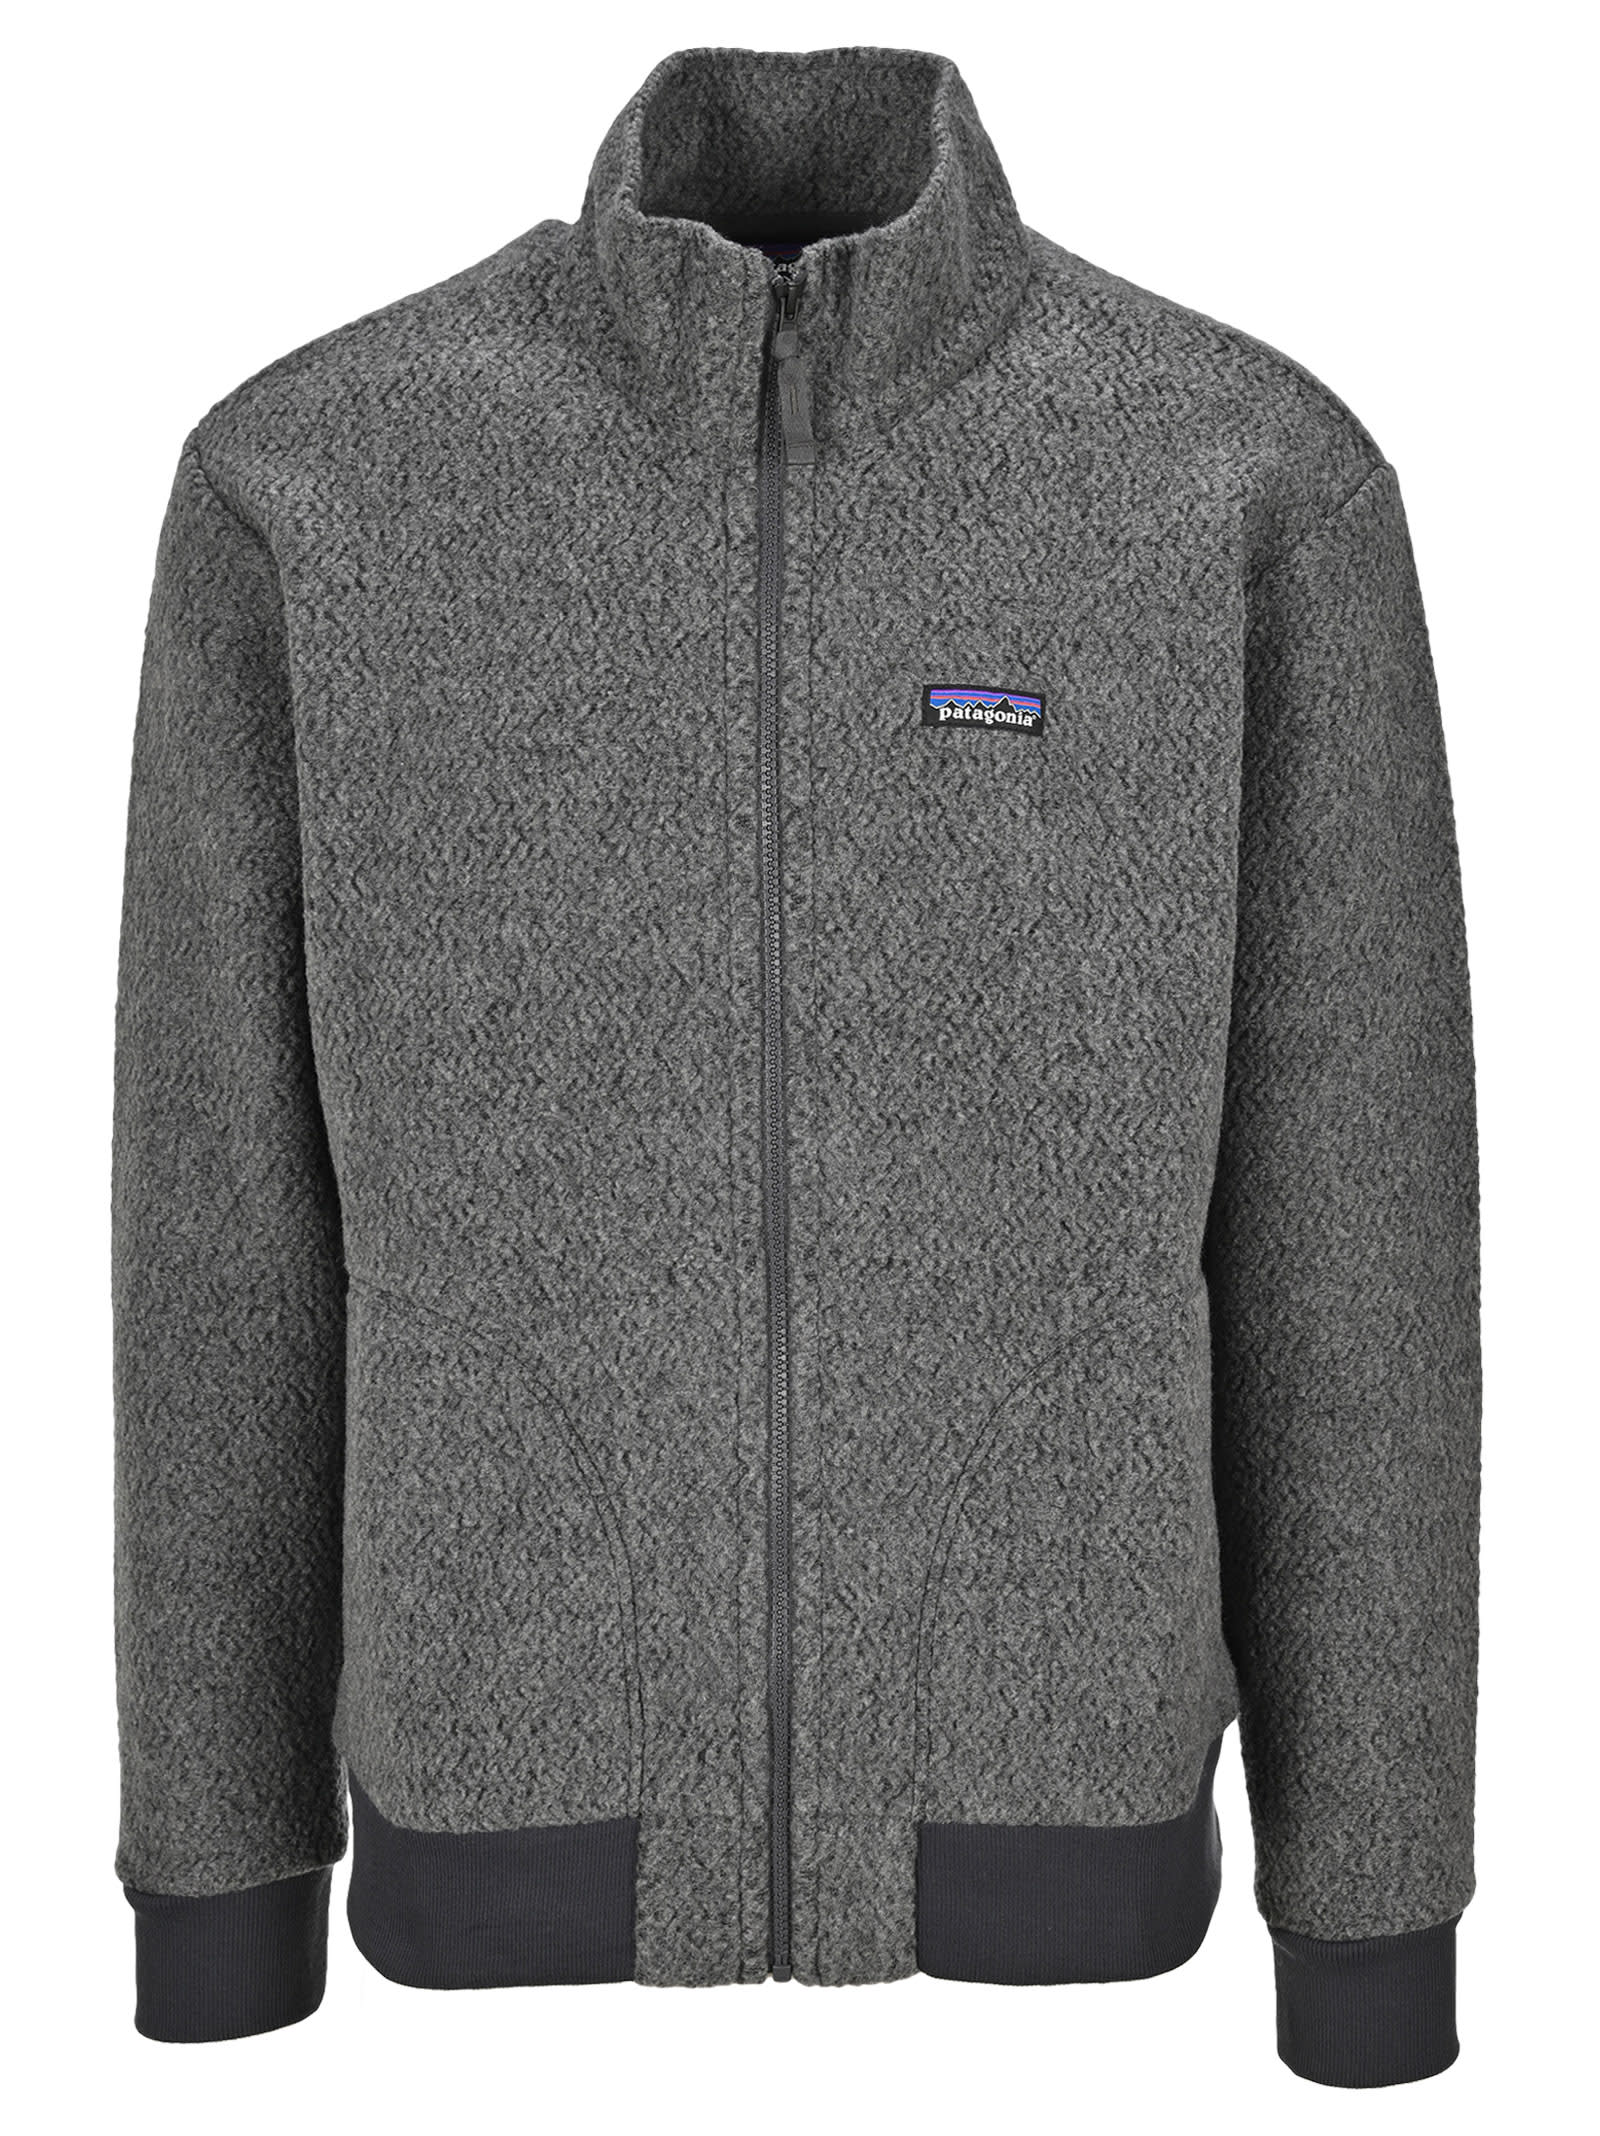 Woolyester Fleece Rib-trimmed Jacket By Patagonia. Featuring: - High Neck; - Front Zip Fastening; - Logo Patch At The Chest; - Side Pockets; - Long Sleeves; - Ribbed Hem And Cuffs. Composition: 46% POLYESTER, 46% RECYCLED WOOL, 4% NYLON, 4% OTHER FIBER